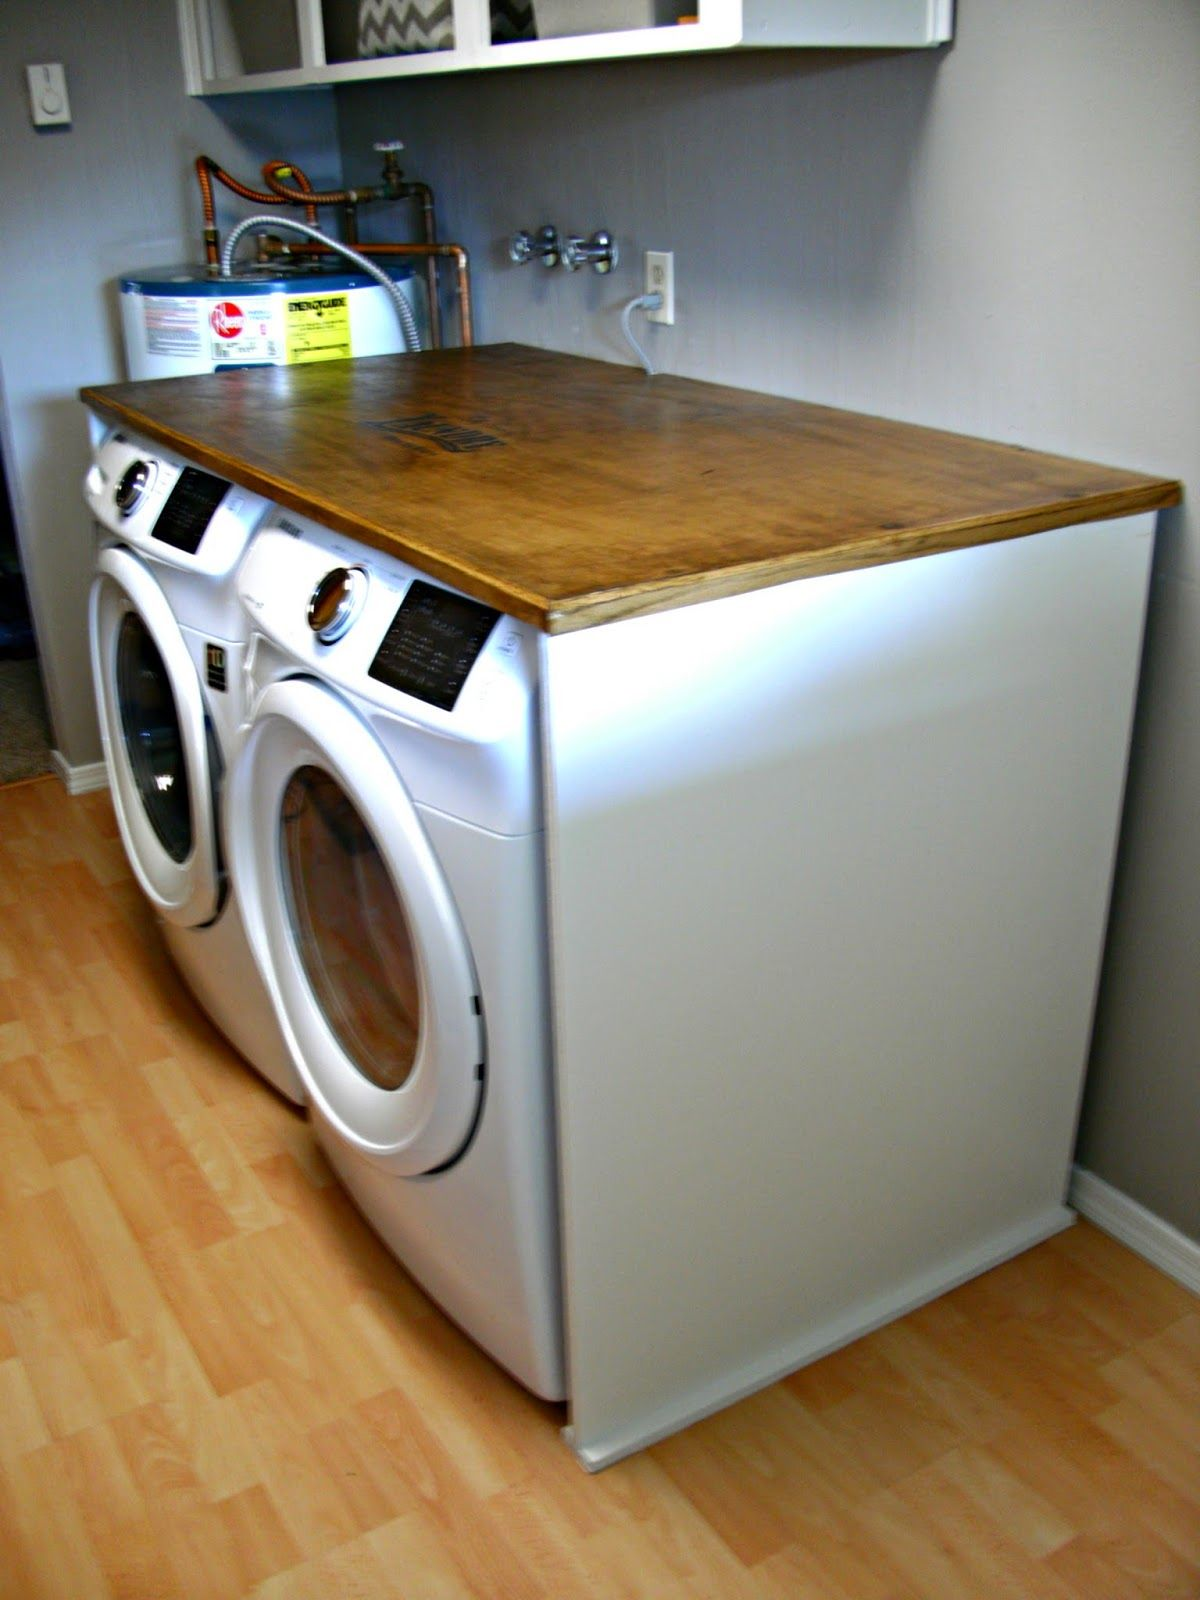 Little Vintage Cottage Laundry Room Redo New Folding Table Laundry Folding Tables Laundry Room Tables Laundry Room Diy